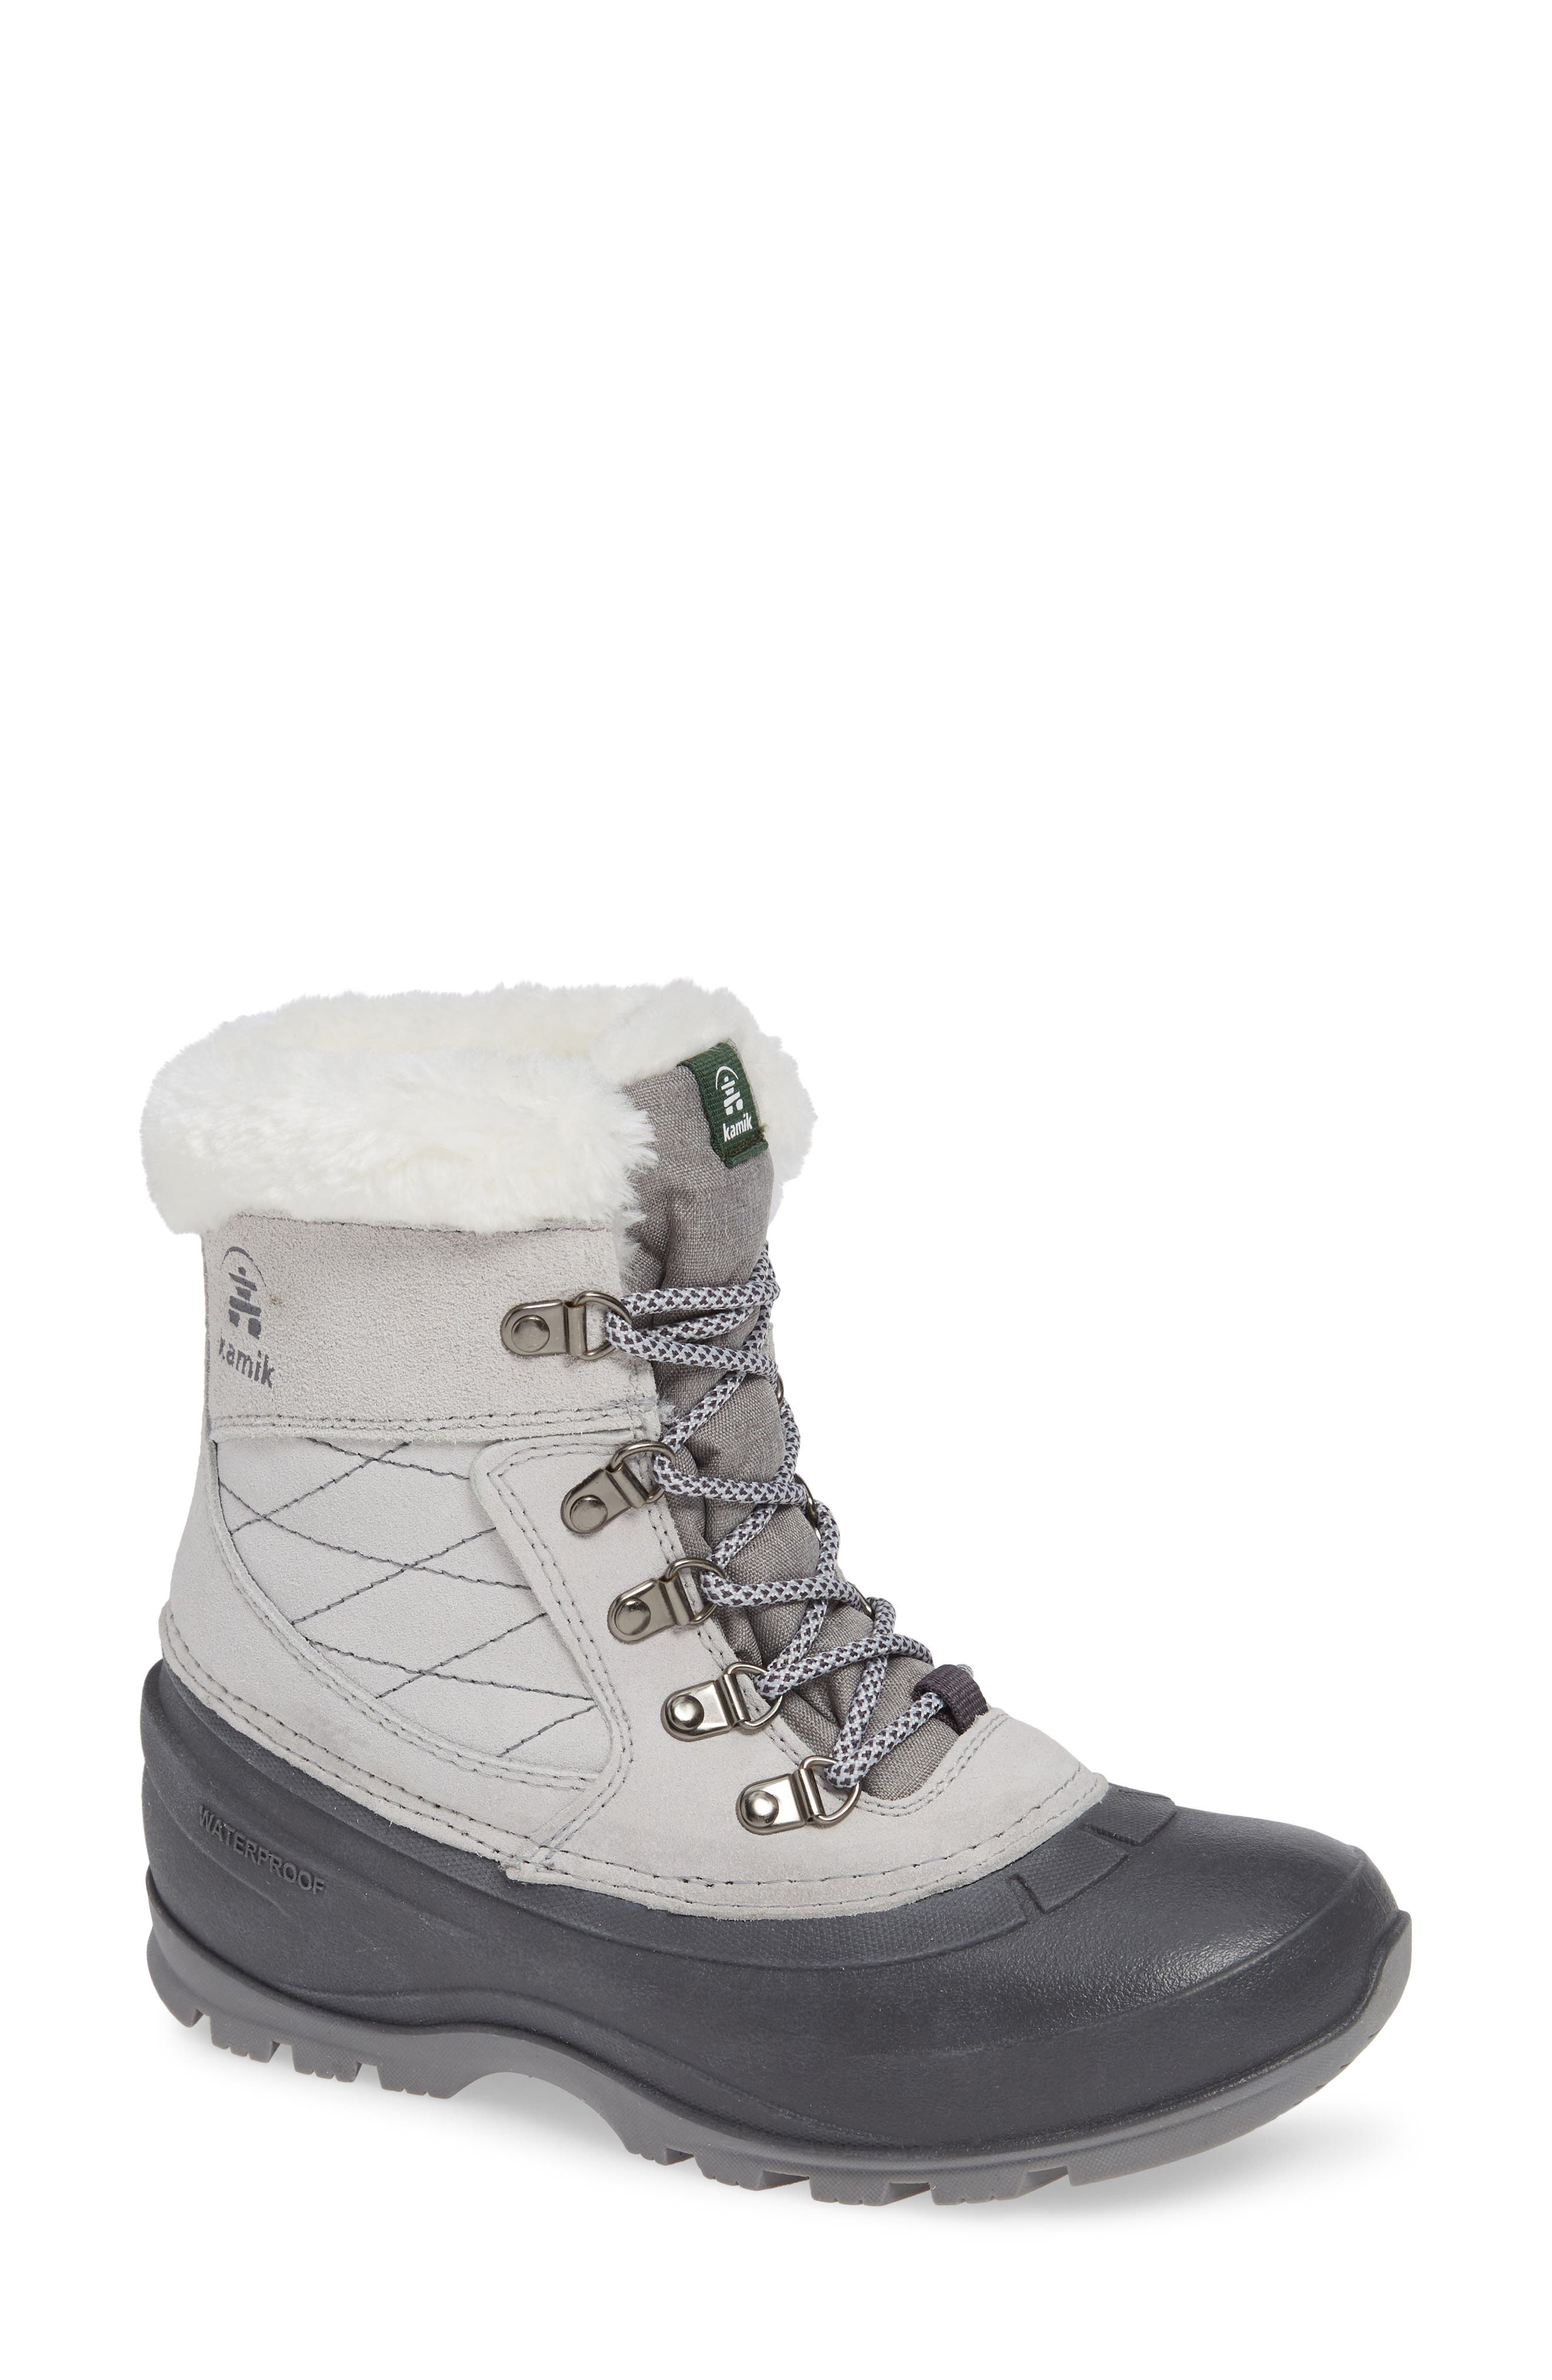 Kamik Snovalley1 Waterproof Thinsulate Insulated Snow Boot, Grey